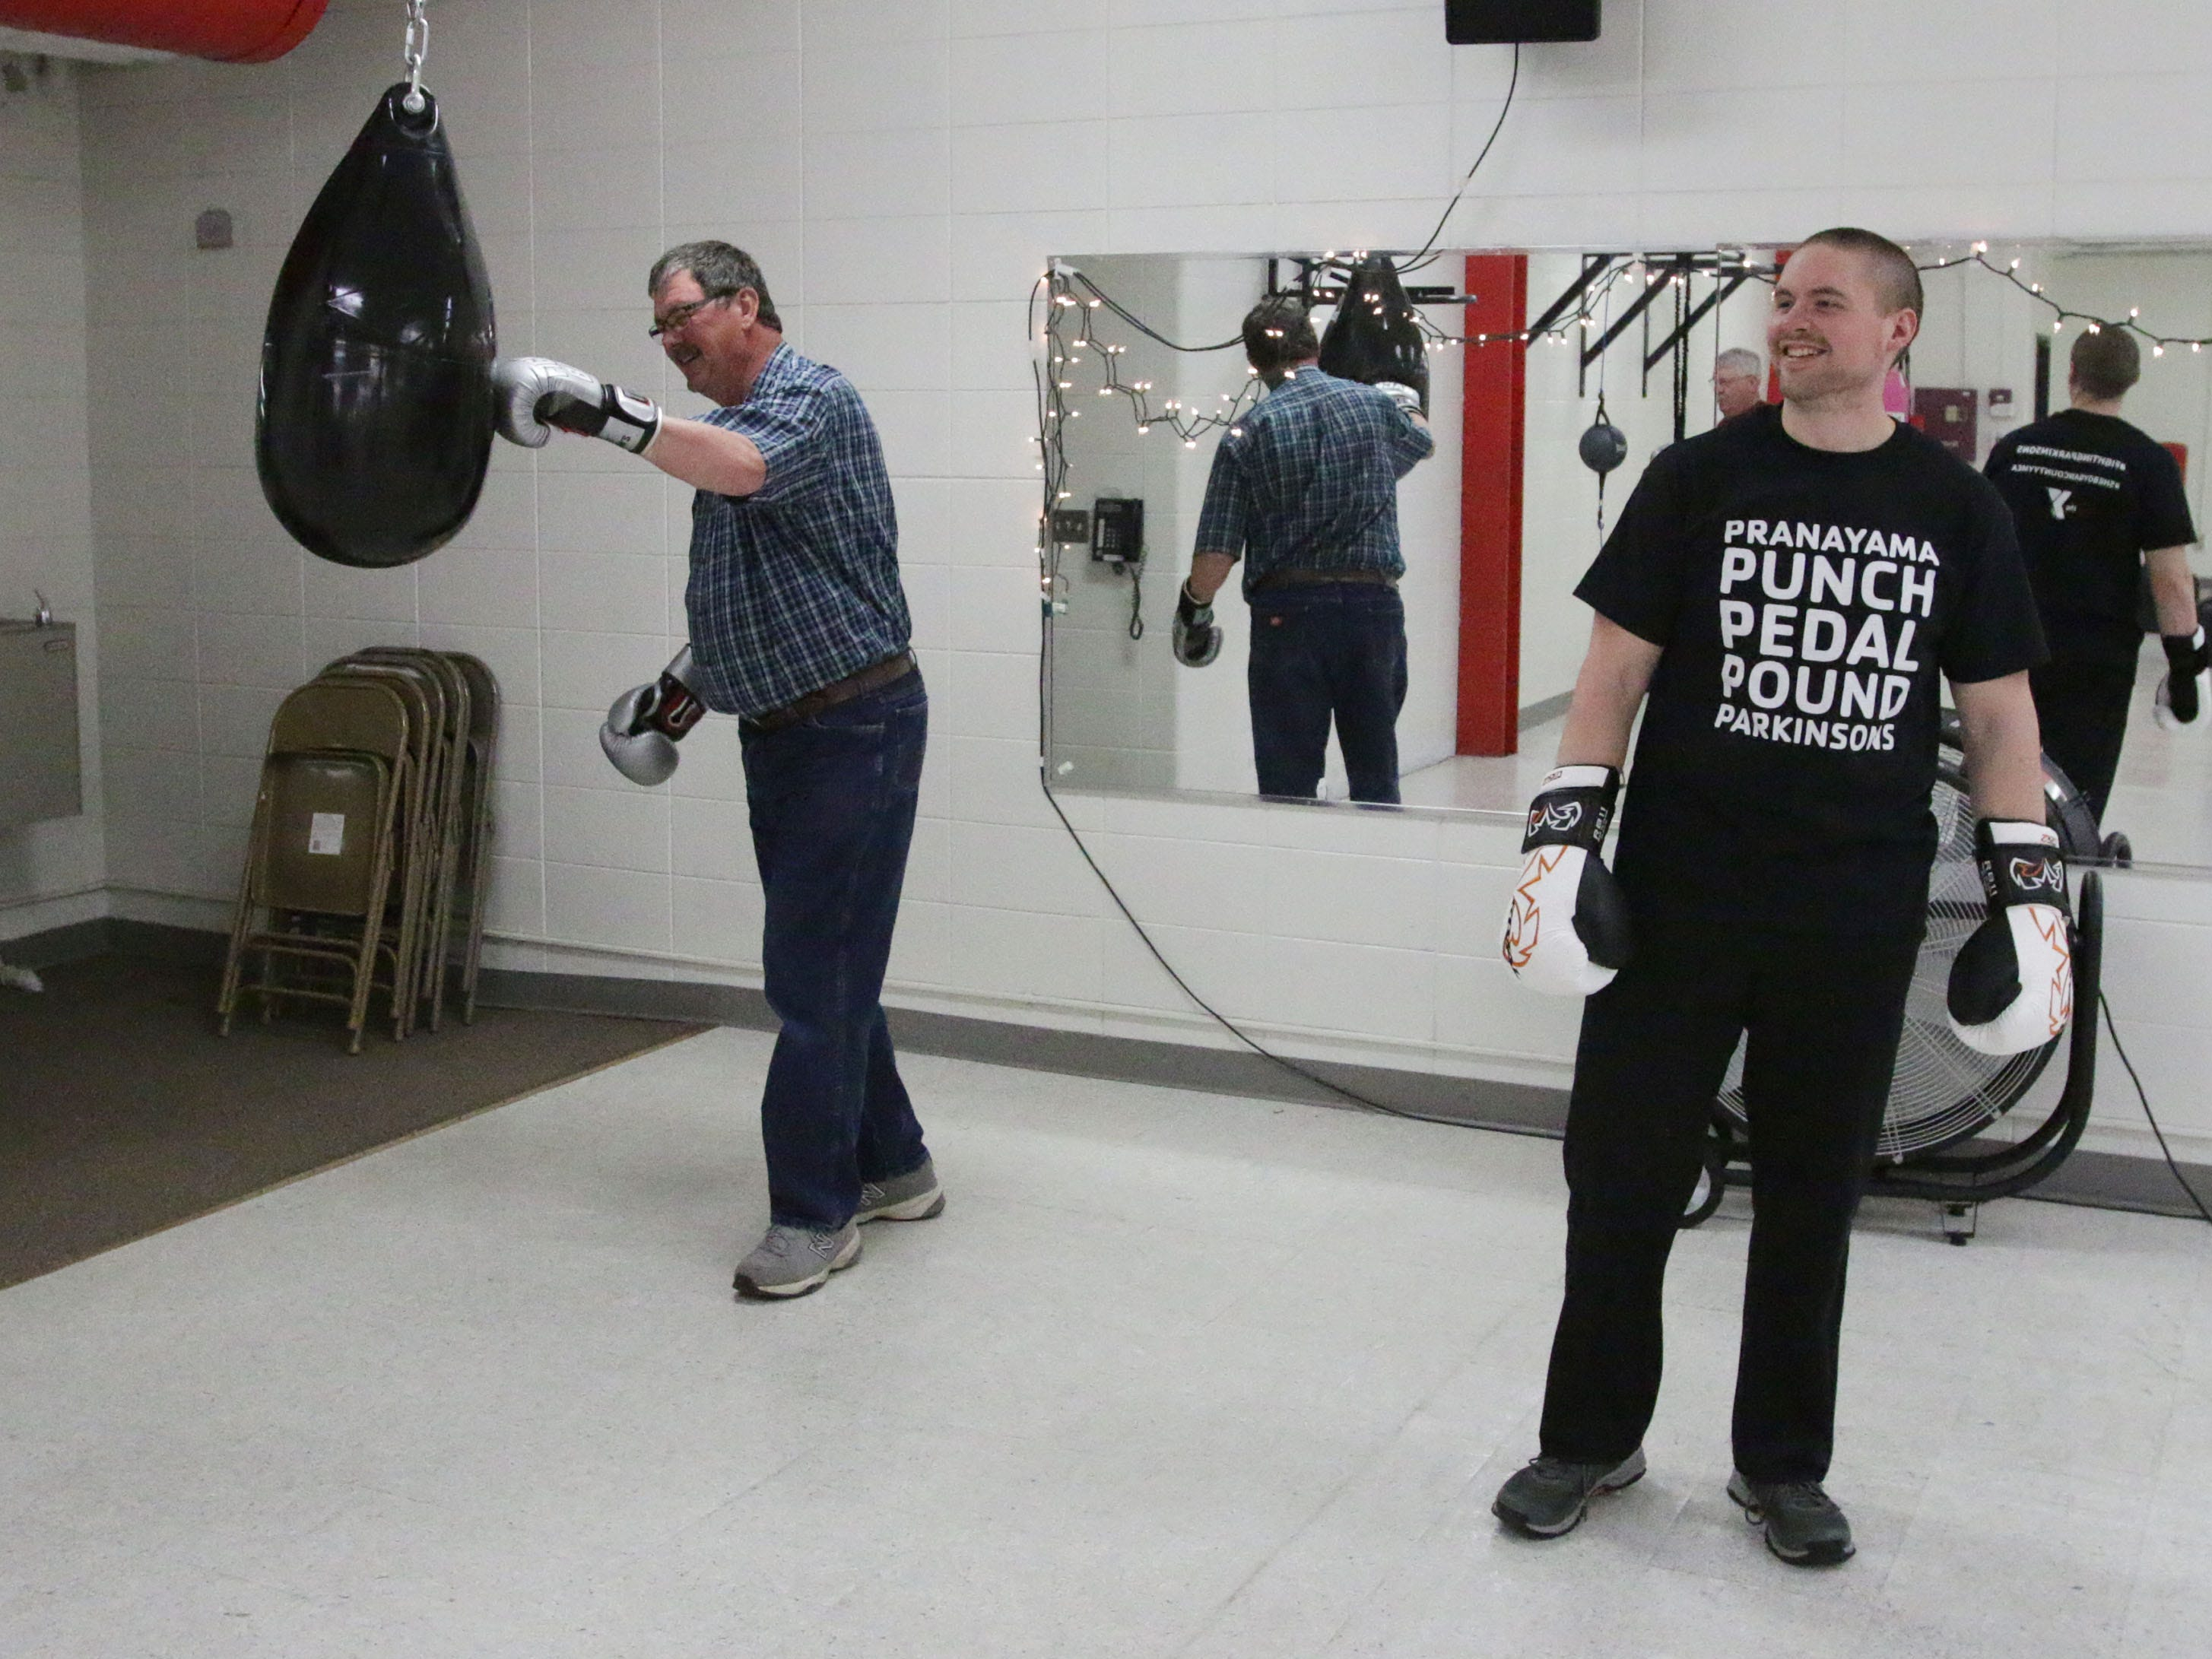 Greg Van Helden, of Sheboygan, left, hits the punching bag during the YMCA Fighting Parkinson's class near instructor Matt Glenzer, Tuesday, March 26, 2019, in Sheboygan, Wis.